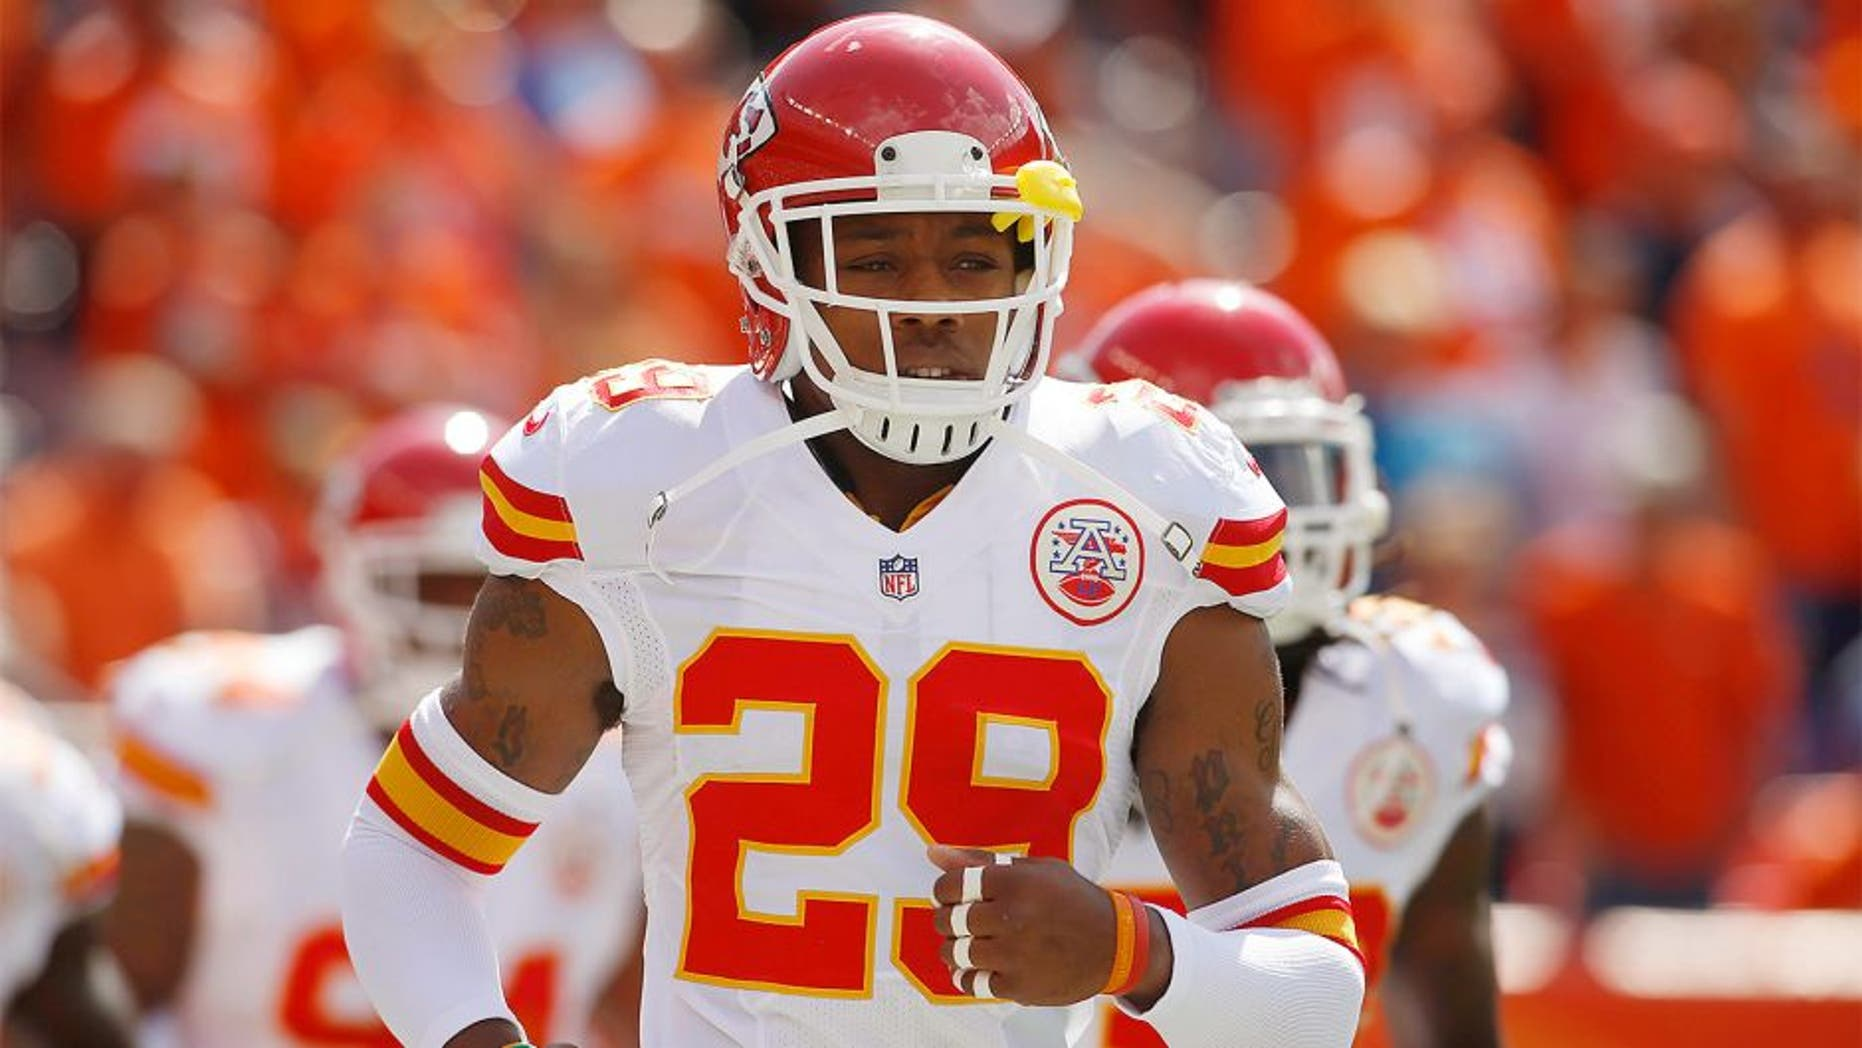 Sep 14, 2014; Denver, CO, USA; Kansas City Chiefs safety Eric Berry (29) before the game against the Denver Broncos at Sports Authority Field at Mile High. Mandatory Credit: Chris Humphreys-USA TODAY Sports